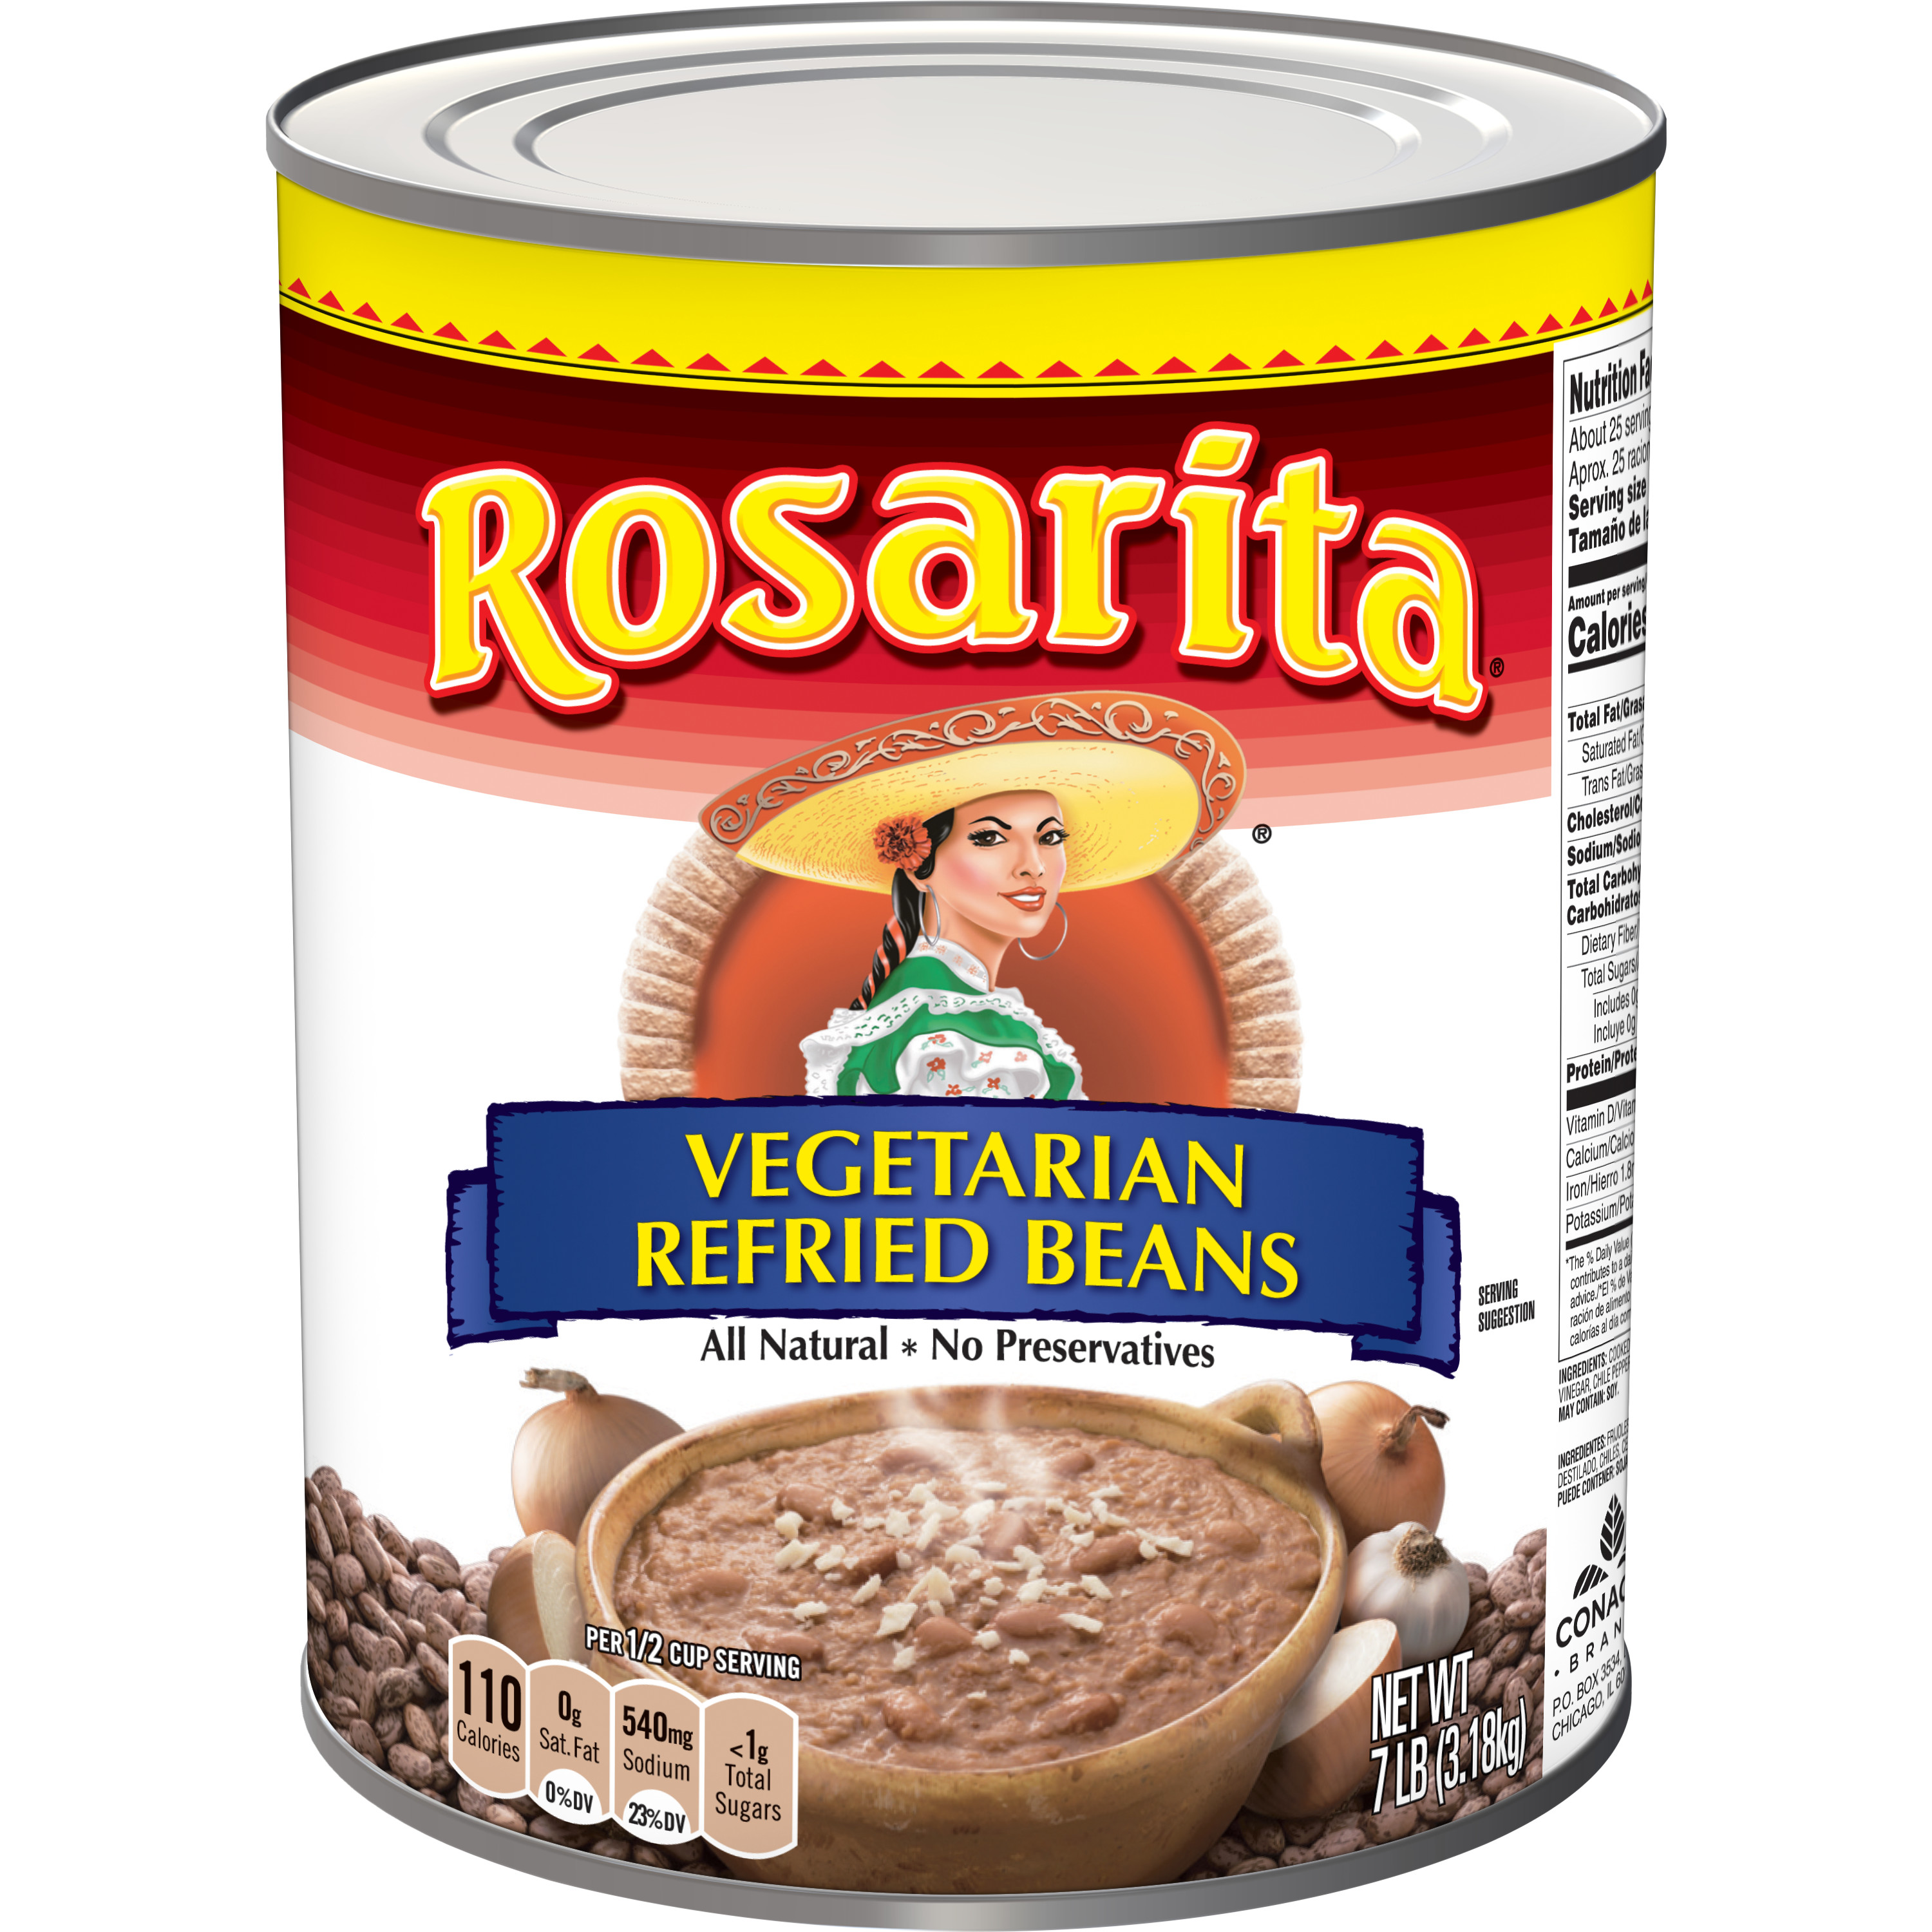 Vegetarian Refried Beans - #10 Can